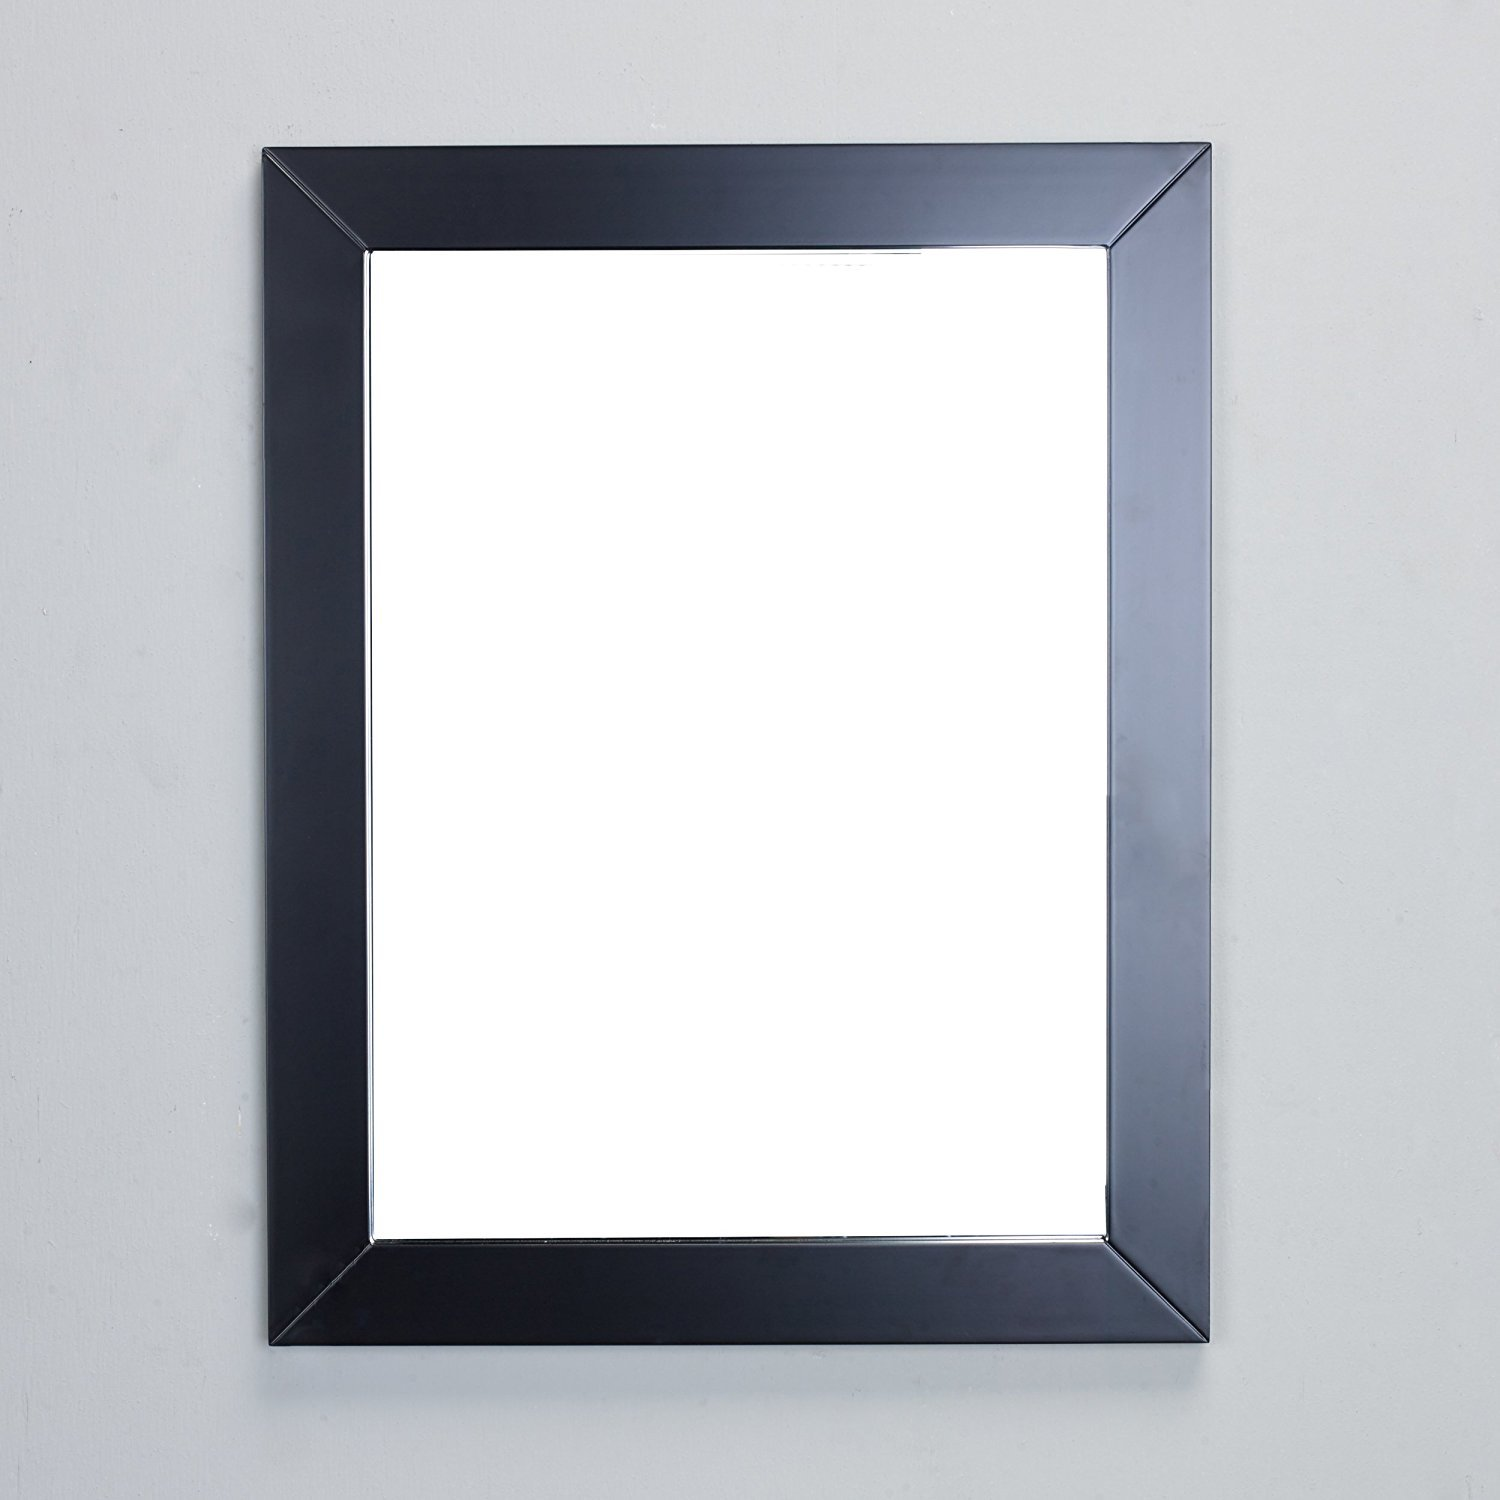 70 Off Eviva Evmr04 24es Sun 24 Inch Espresso Framed Bathroom Wall Mirror Combination